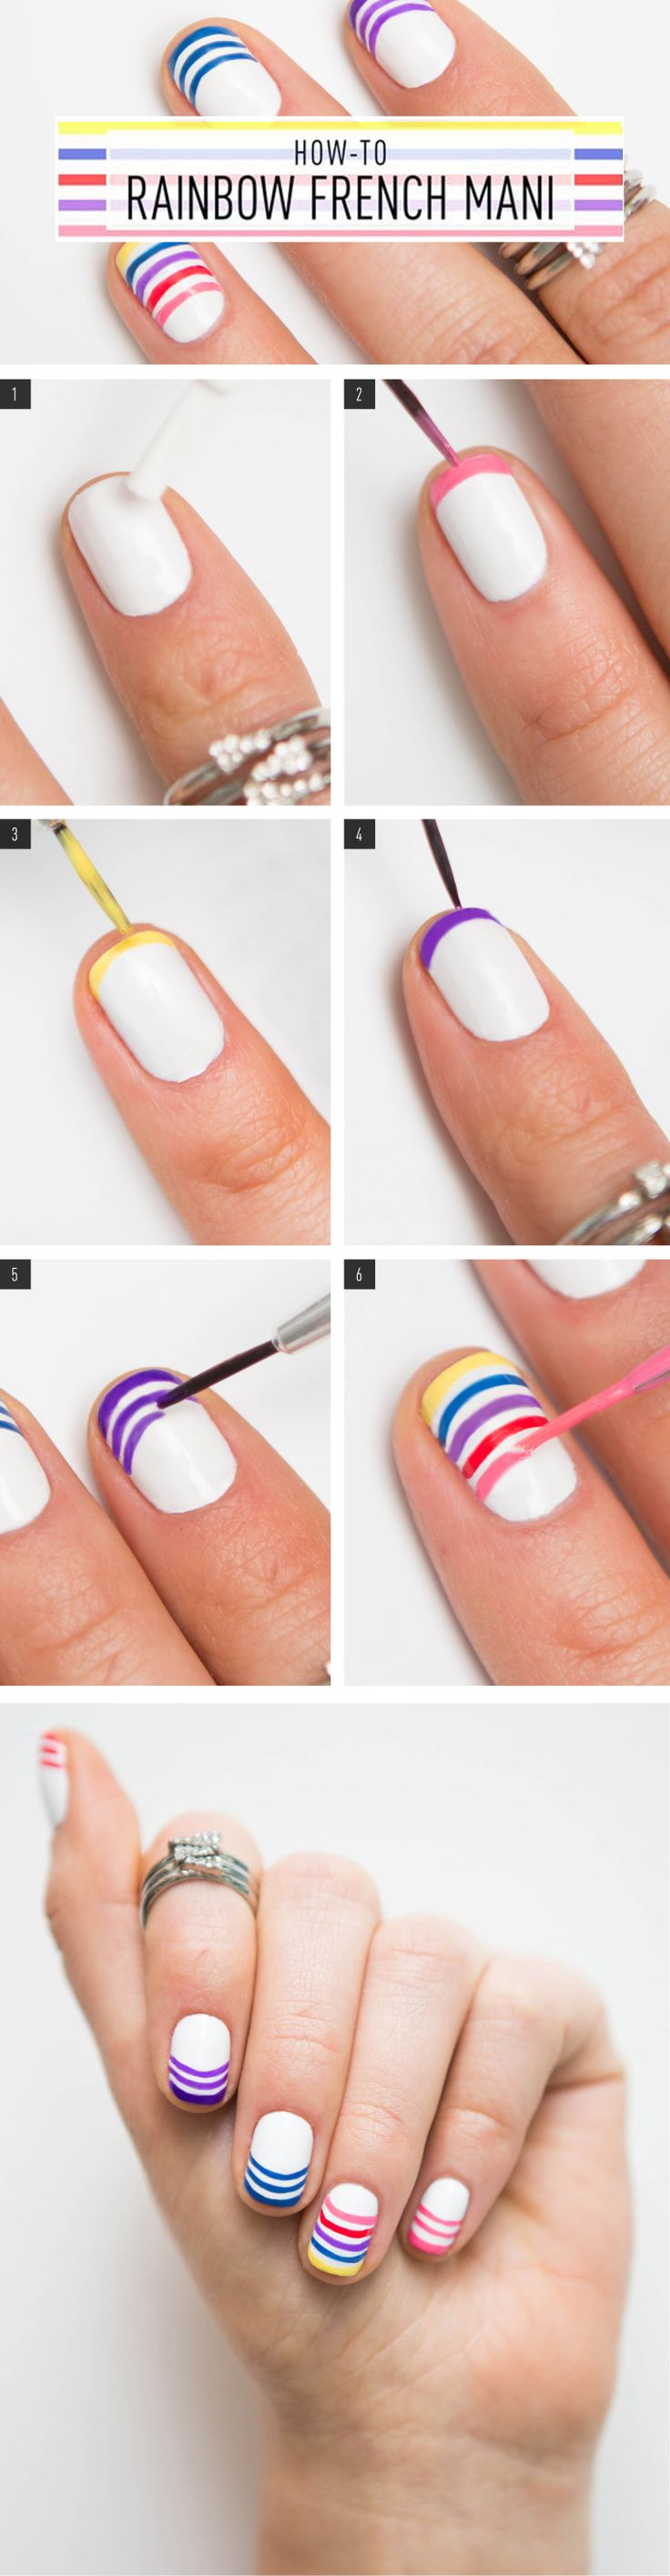 How to Do a Rainbow French Manicure With Yourself